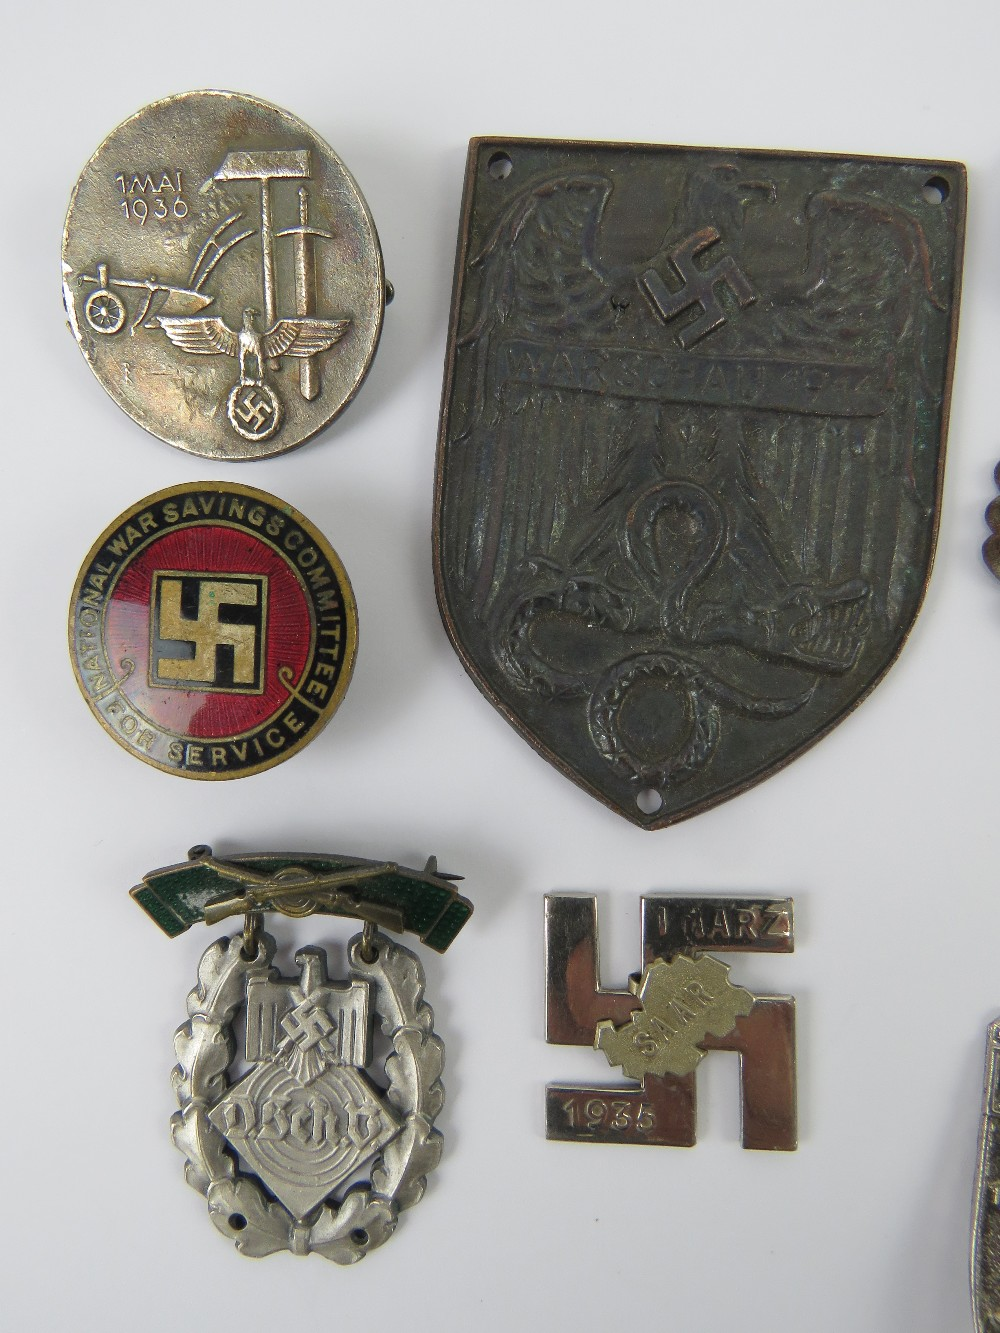 A quantity of assorted WWII German day badges including; 1944 Warschau, 1936 XI. - Image 2 of 7